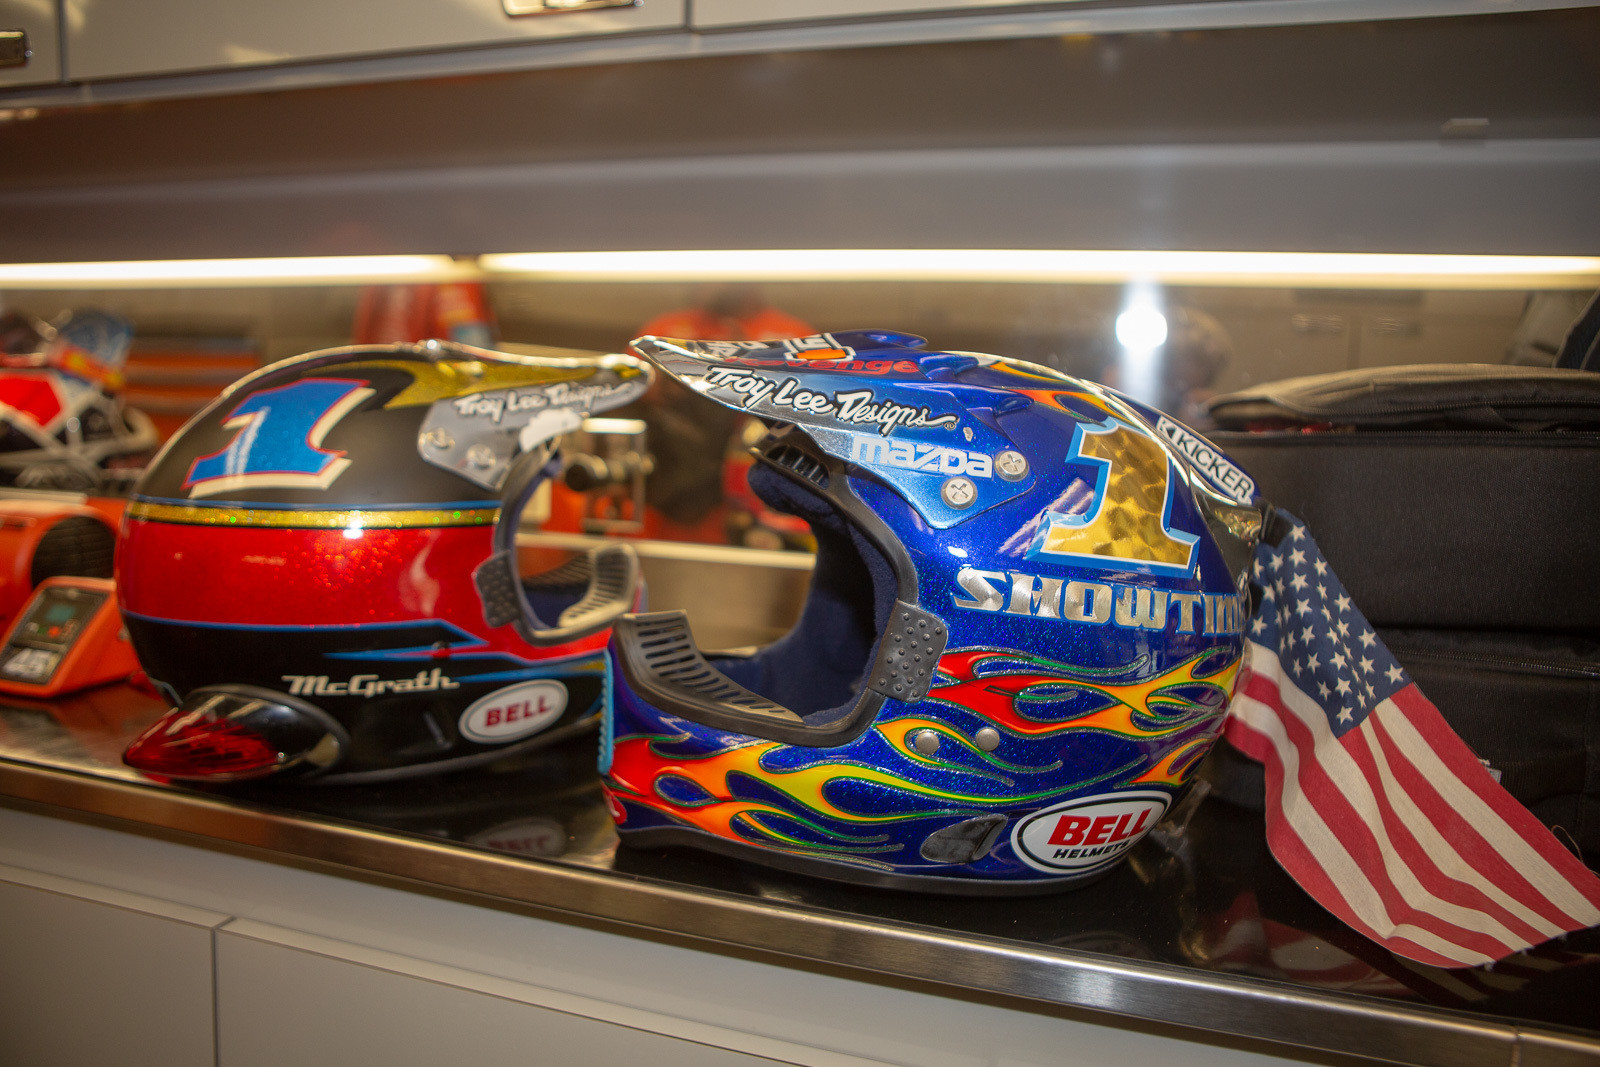 We spotted these vintage Jeremy McGrath helmets in the Troy Lee Designs/Red Bull/KTM rig, before they made it out to a Red Bull Straight Rhythm display.